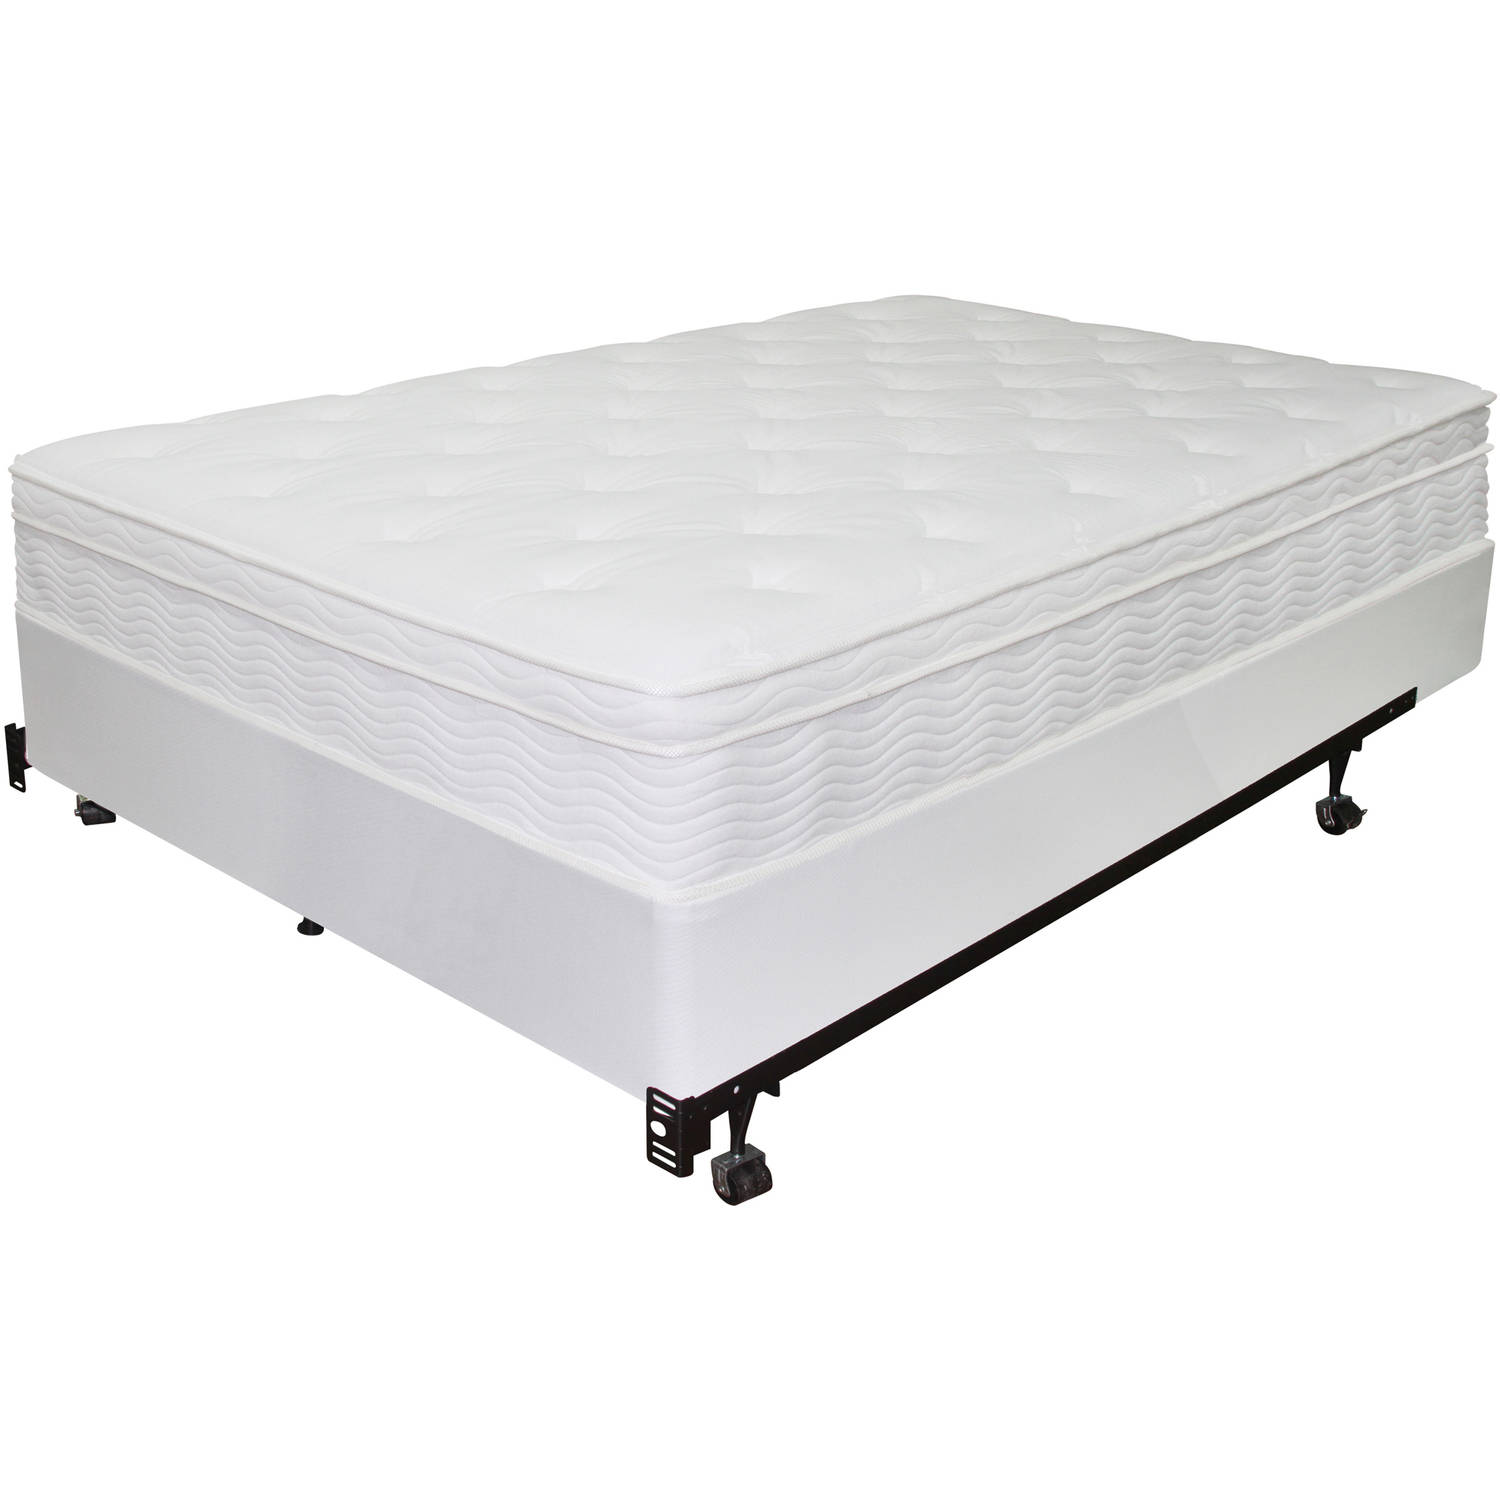 Spa Sensations 75 High BiFold Box Spring Walmartcom